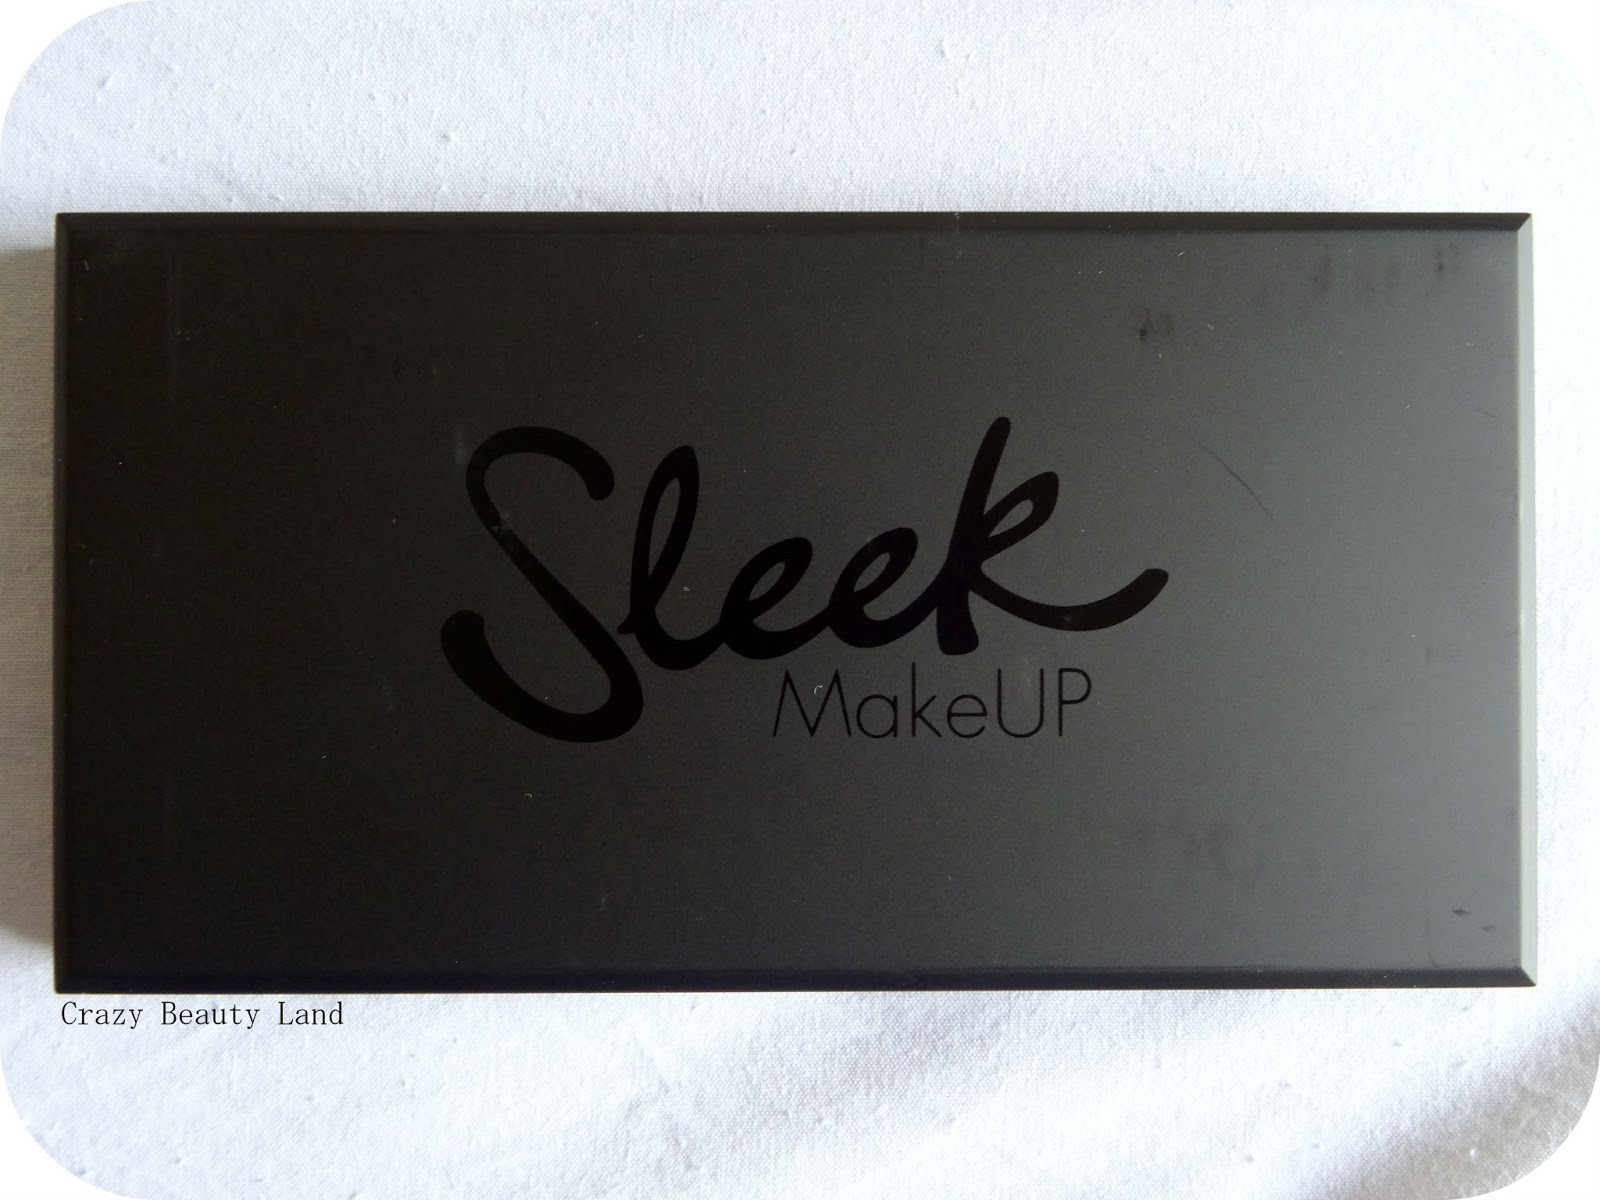 Sleek Makeup iDivine Oh So Special Palette Review and Swatches